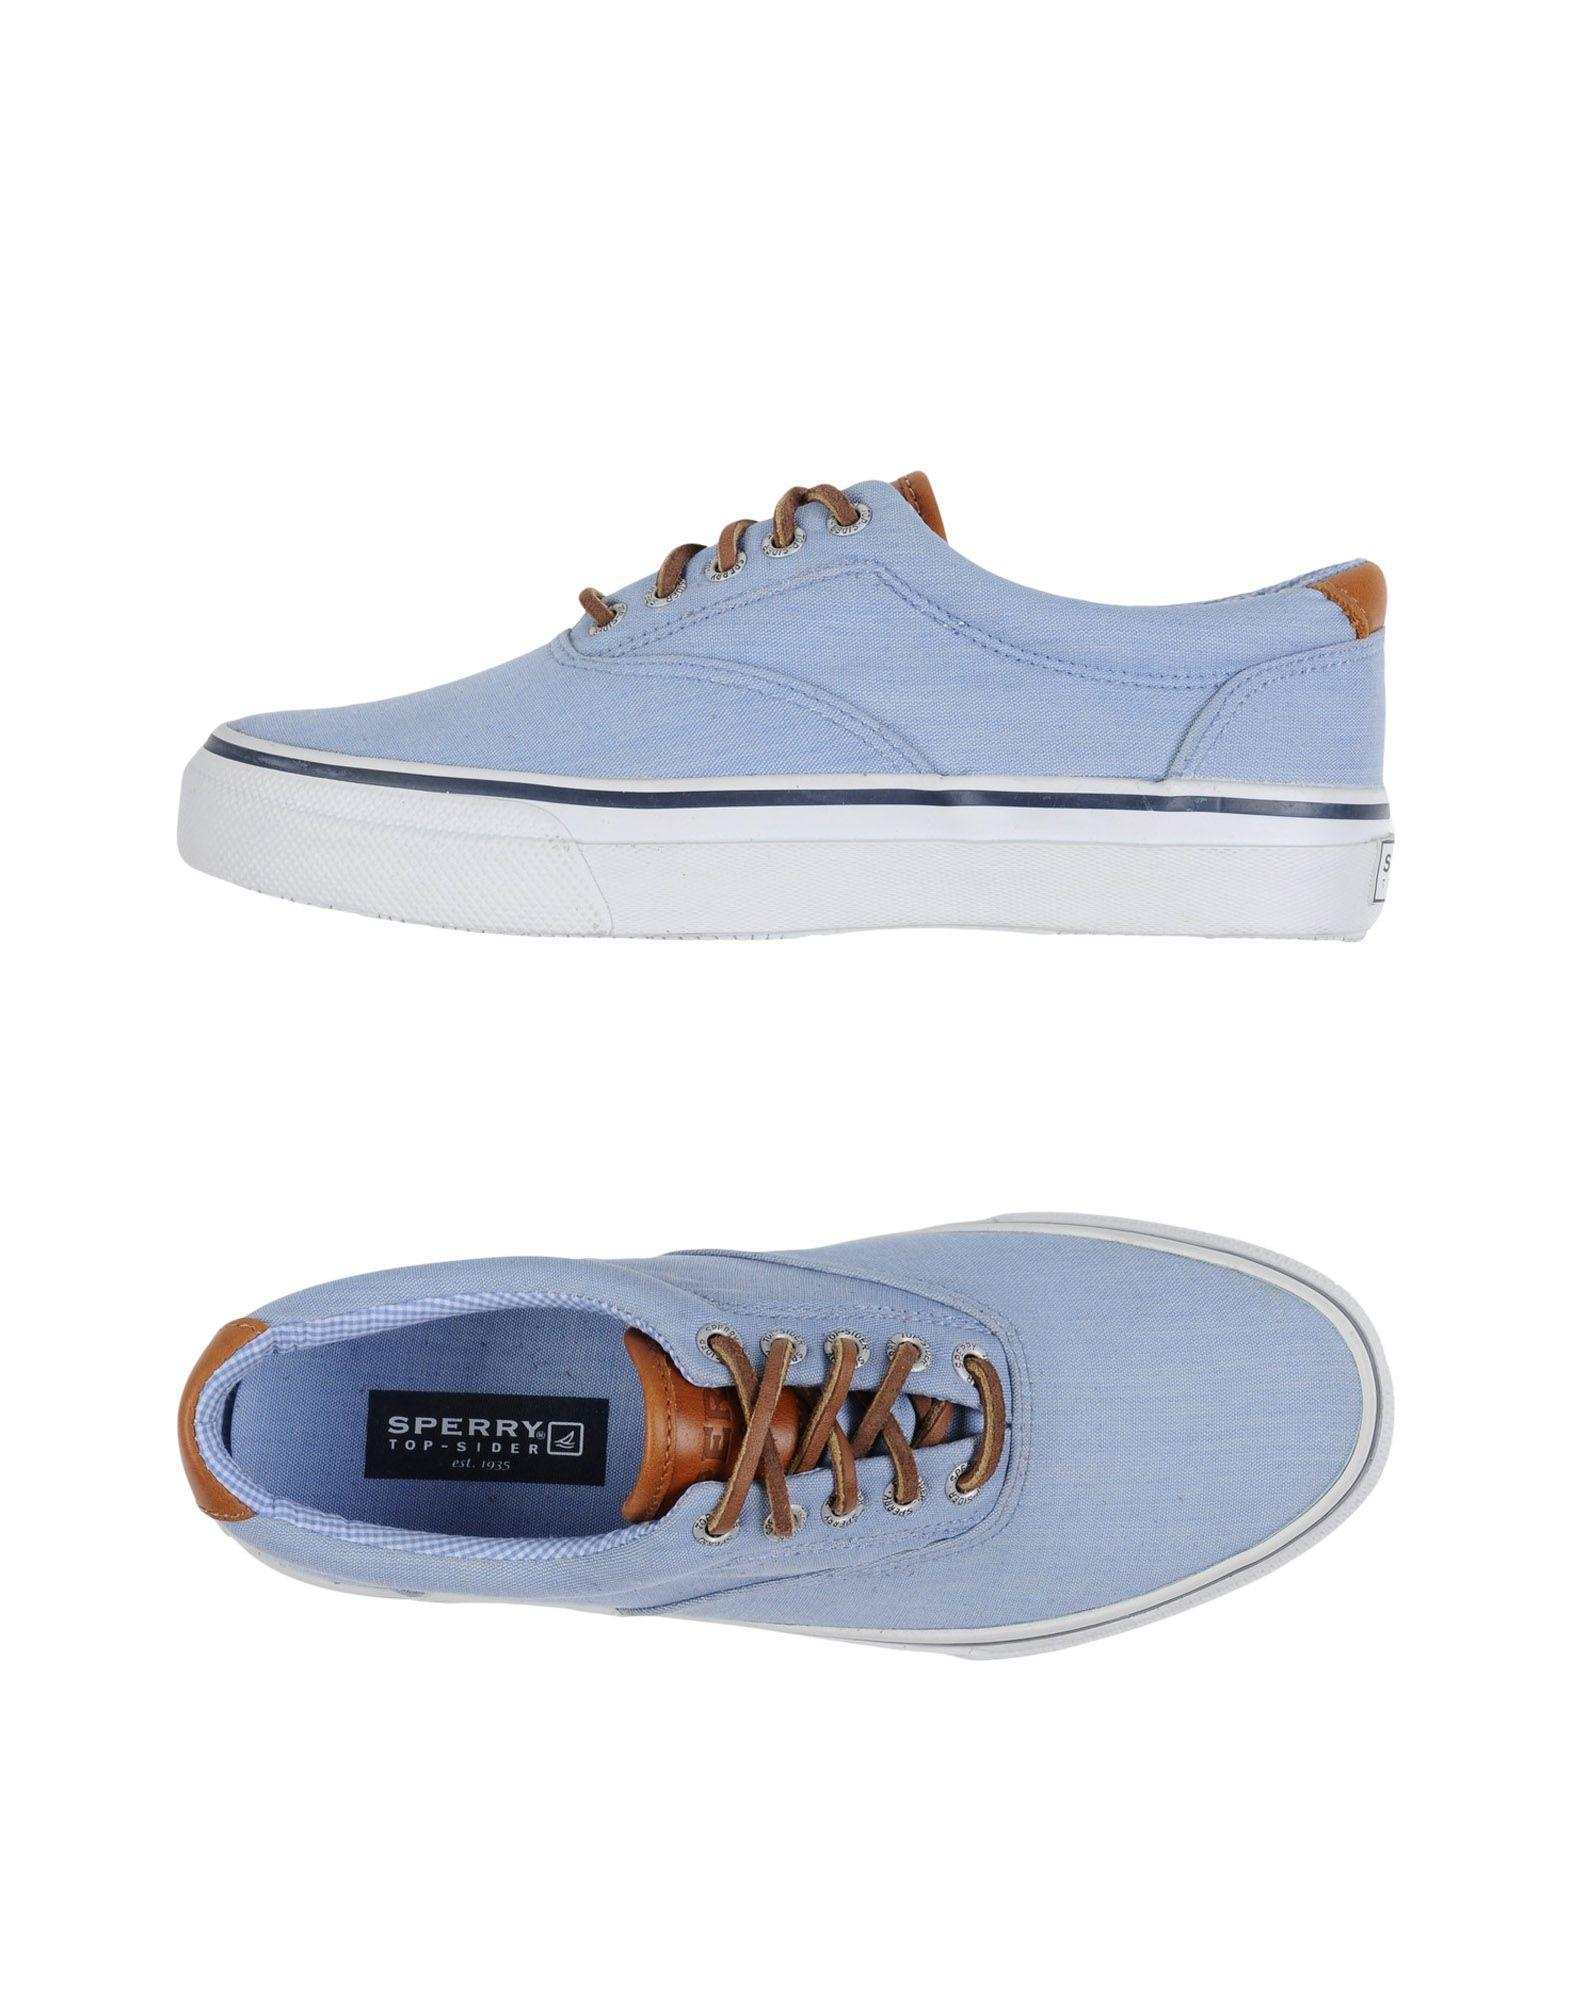 Sperry Top-sider In Sky Blue